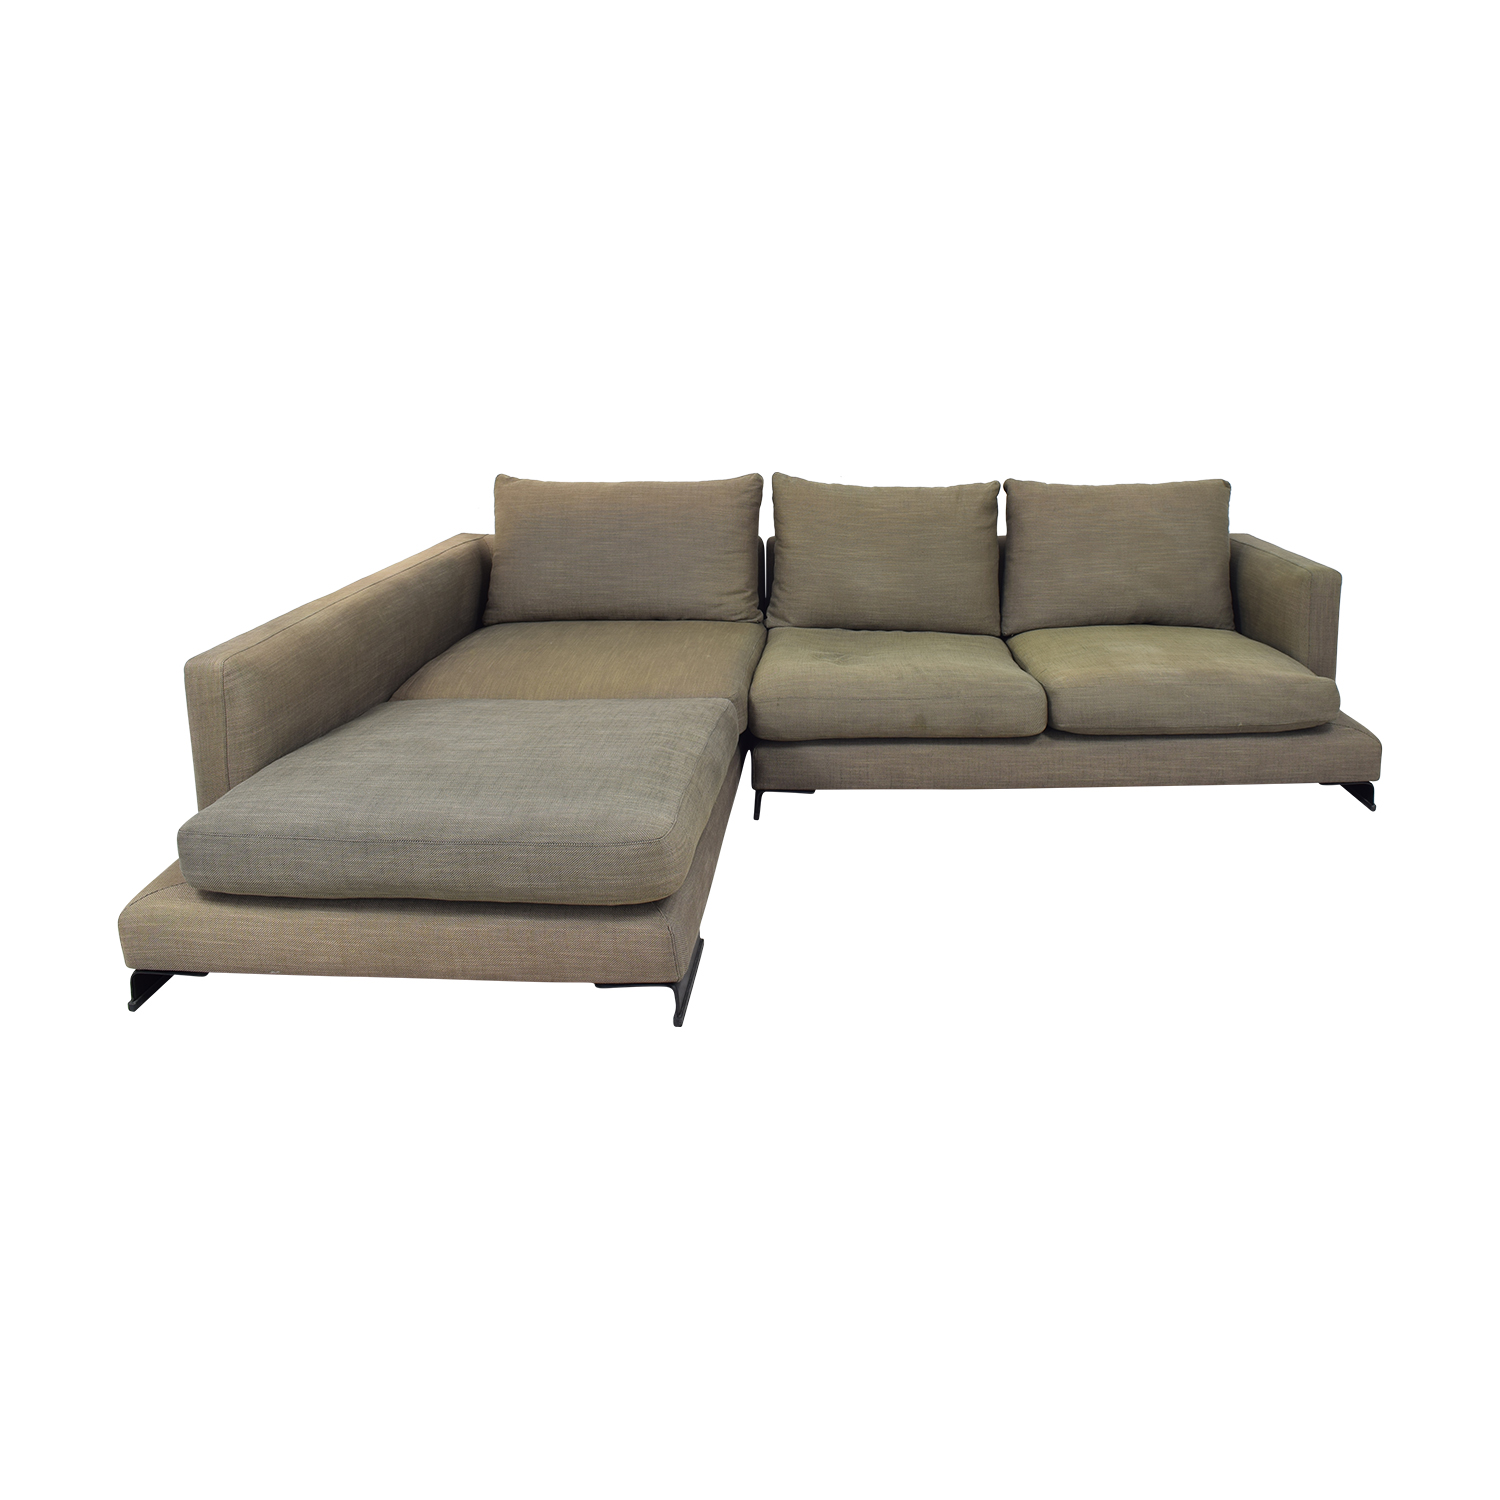 Camerich Lazy Time Sectional Sofa sale